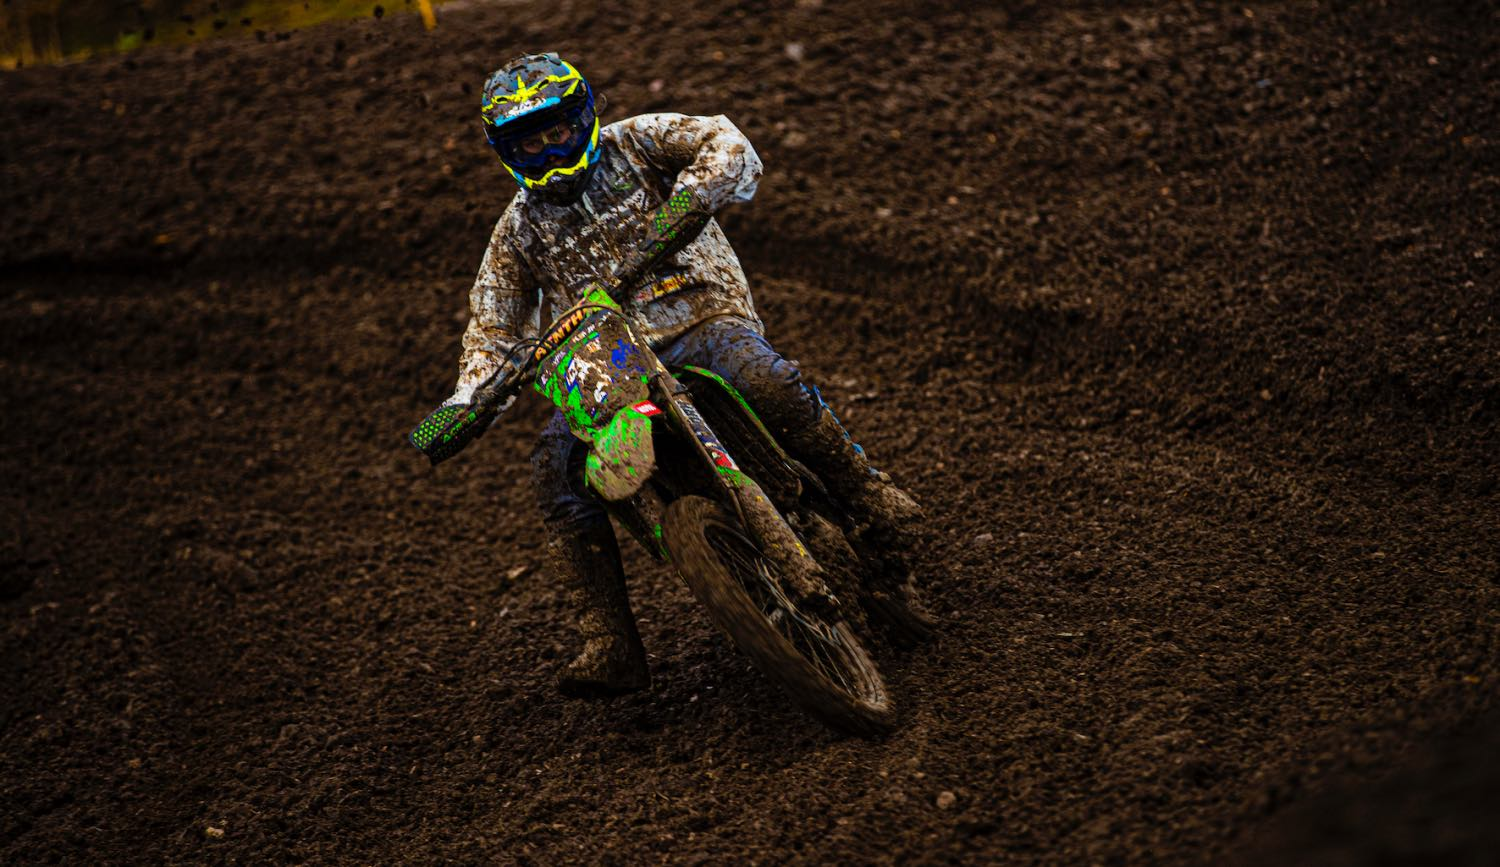 Kayla Raaff racing in the Ladies class at Round 4 of the 2021 South African National Motocross Championship